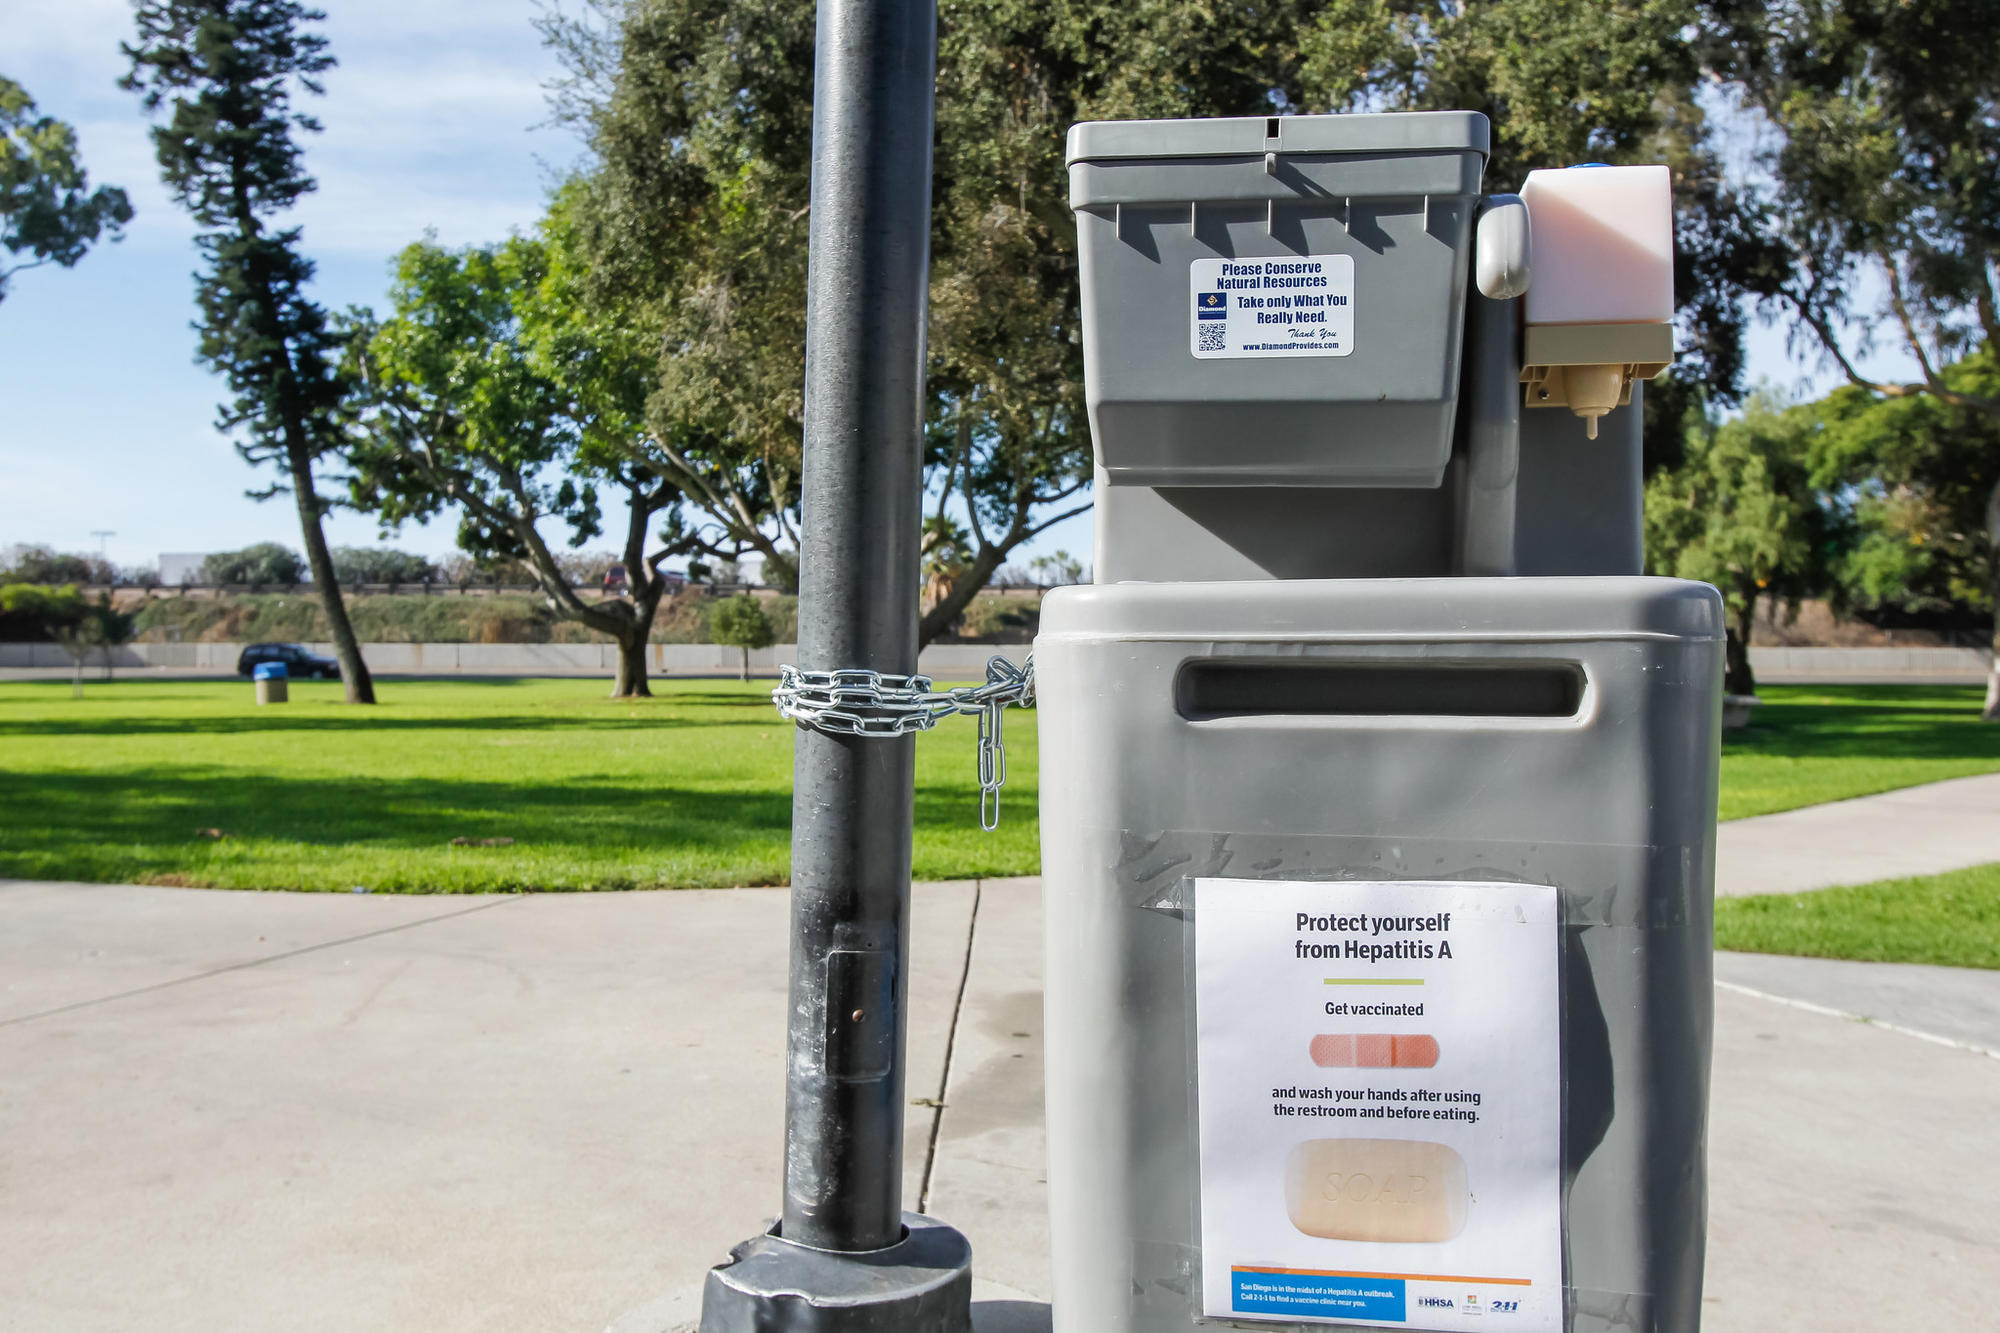 M And T Portable Toilets : Carlsbad to open parks overnight for hand washing